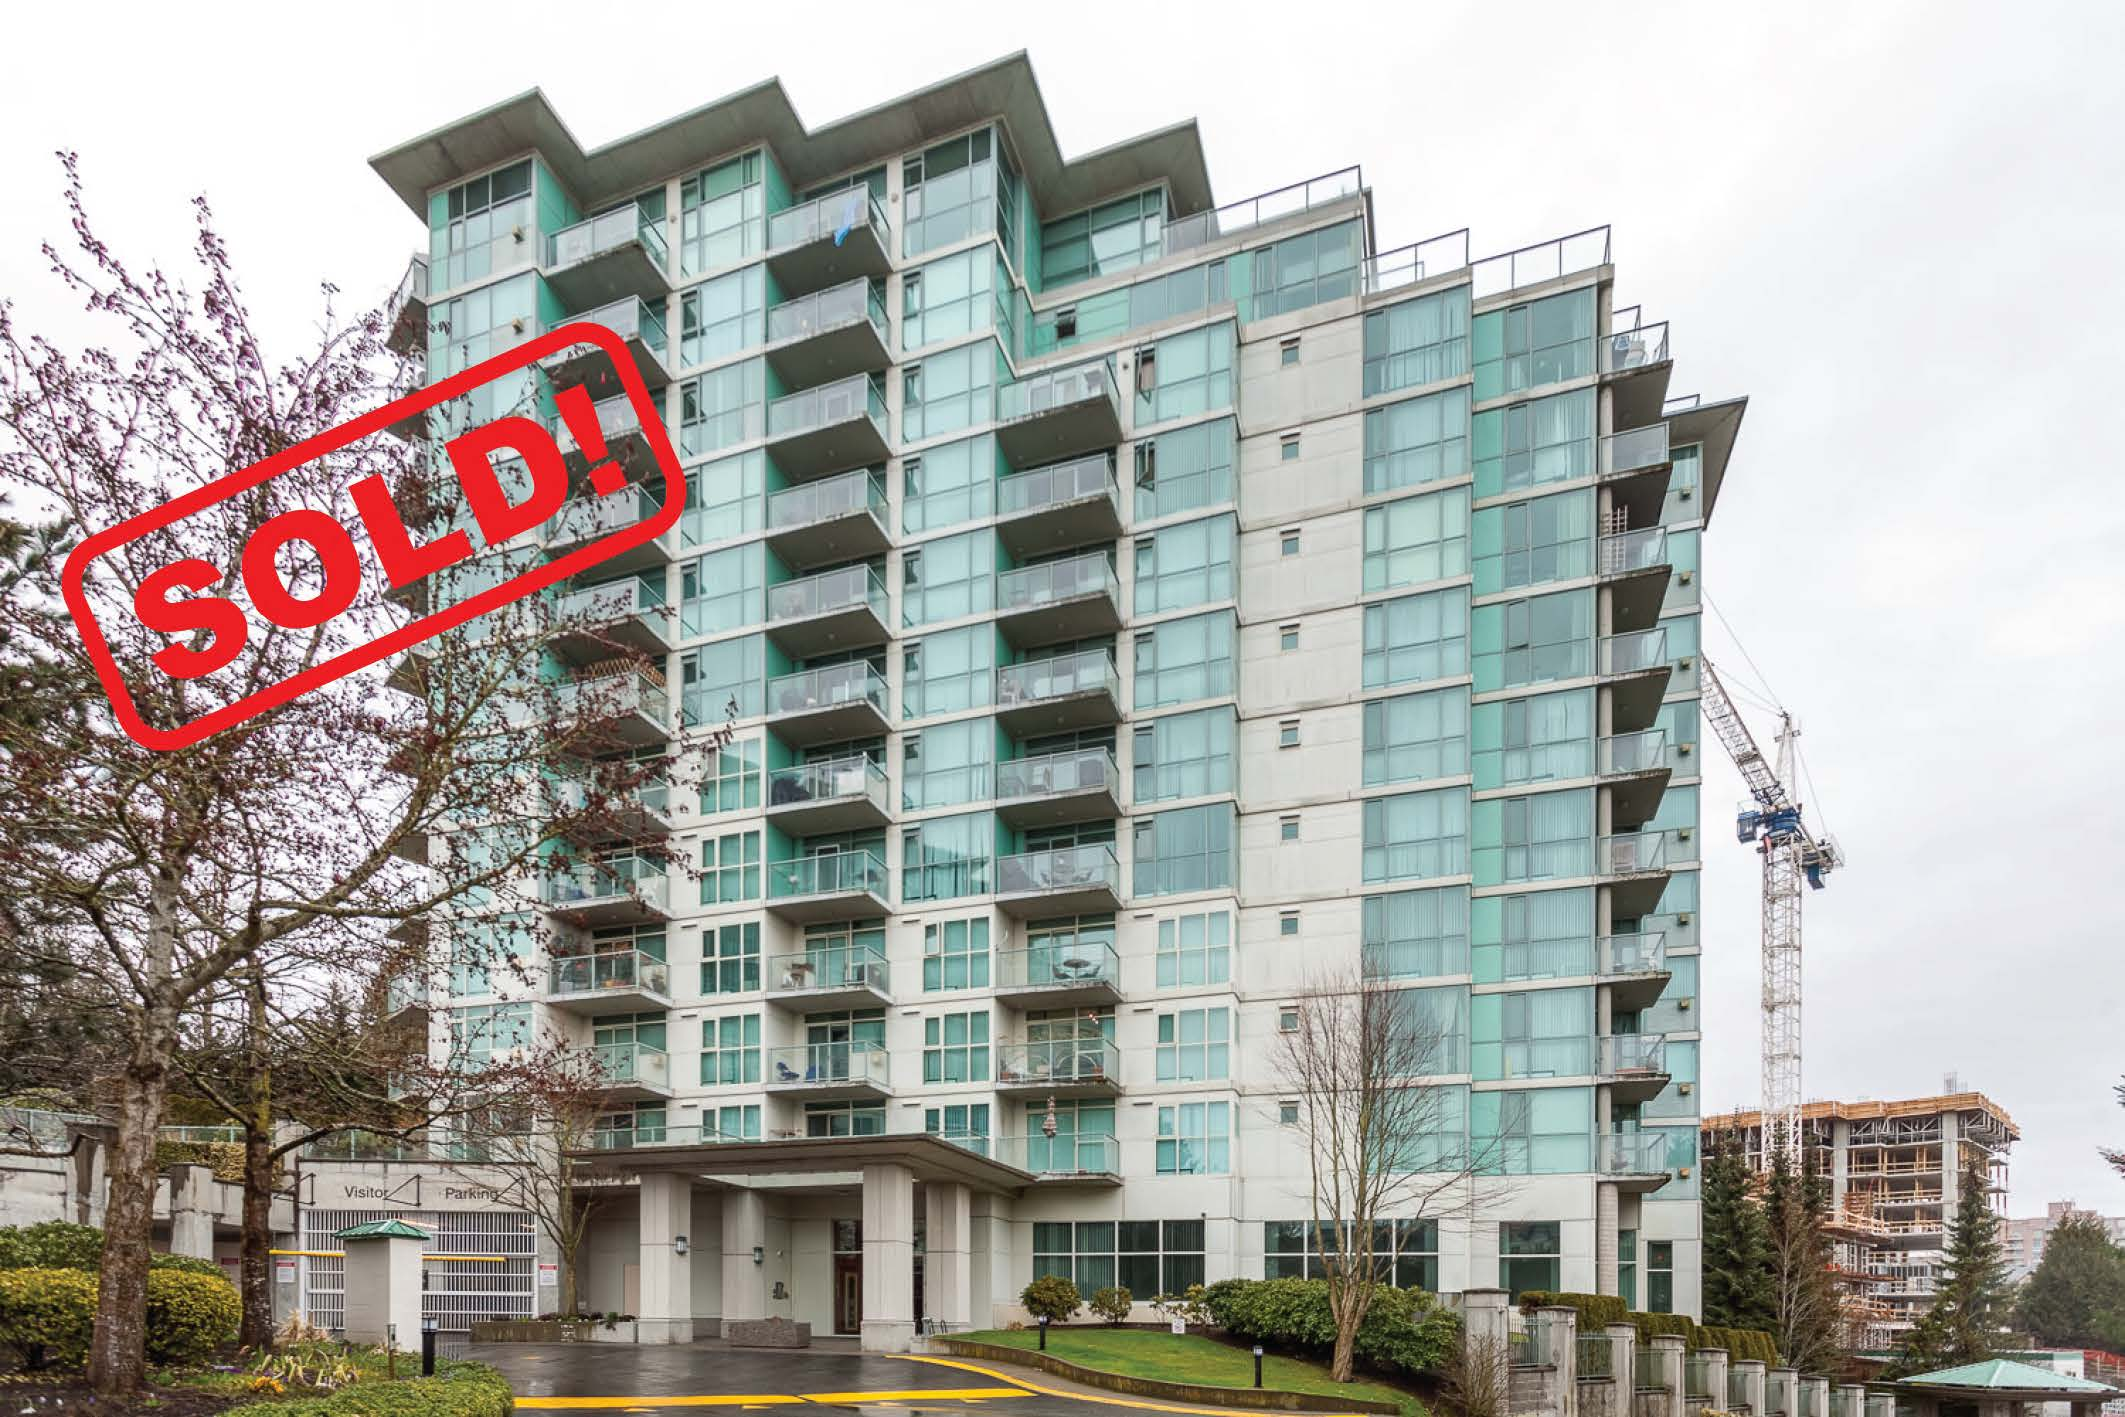 201-2763 Chandlery pl   Sold for: $486,000  2 Bed | 2 Bath | 861 SF